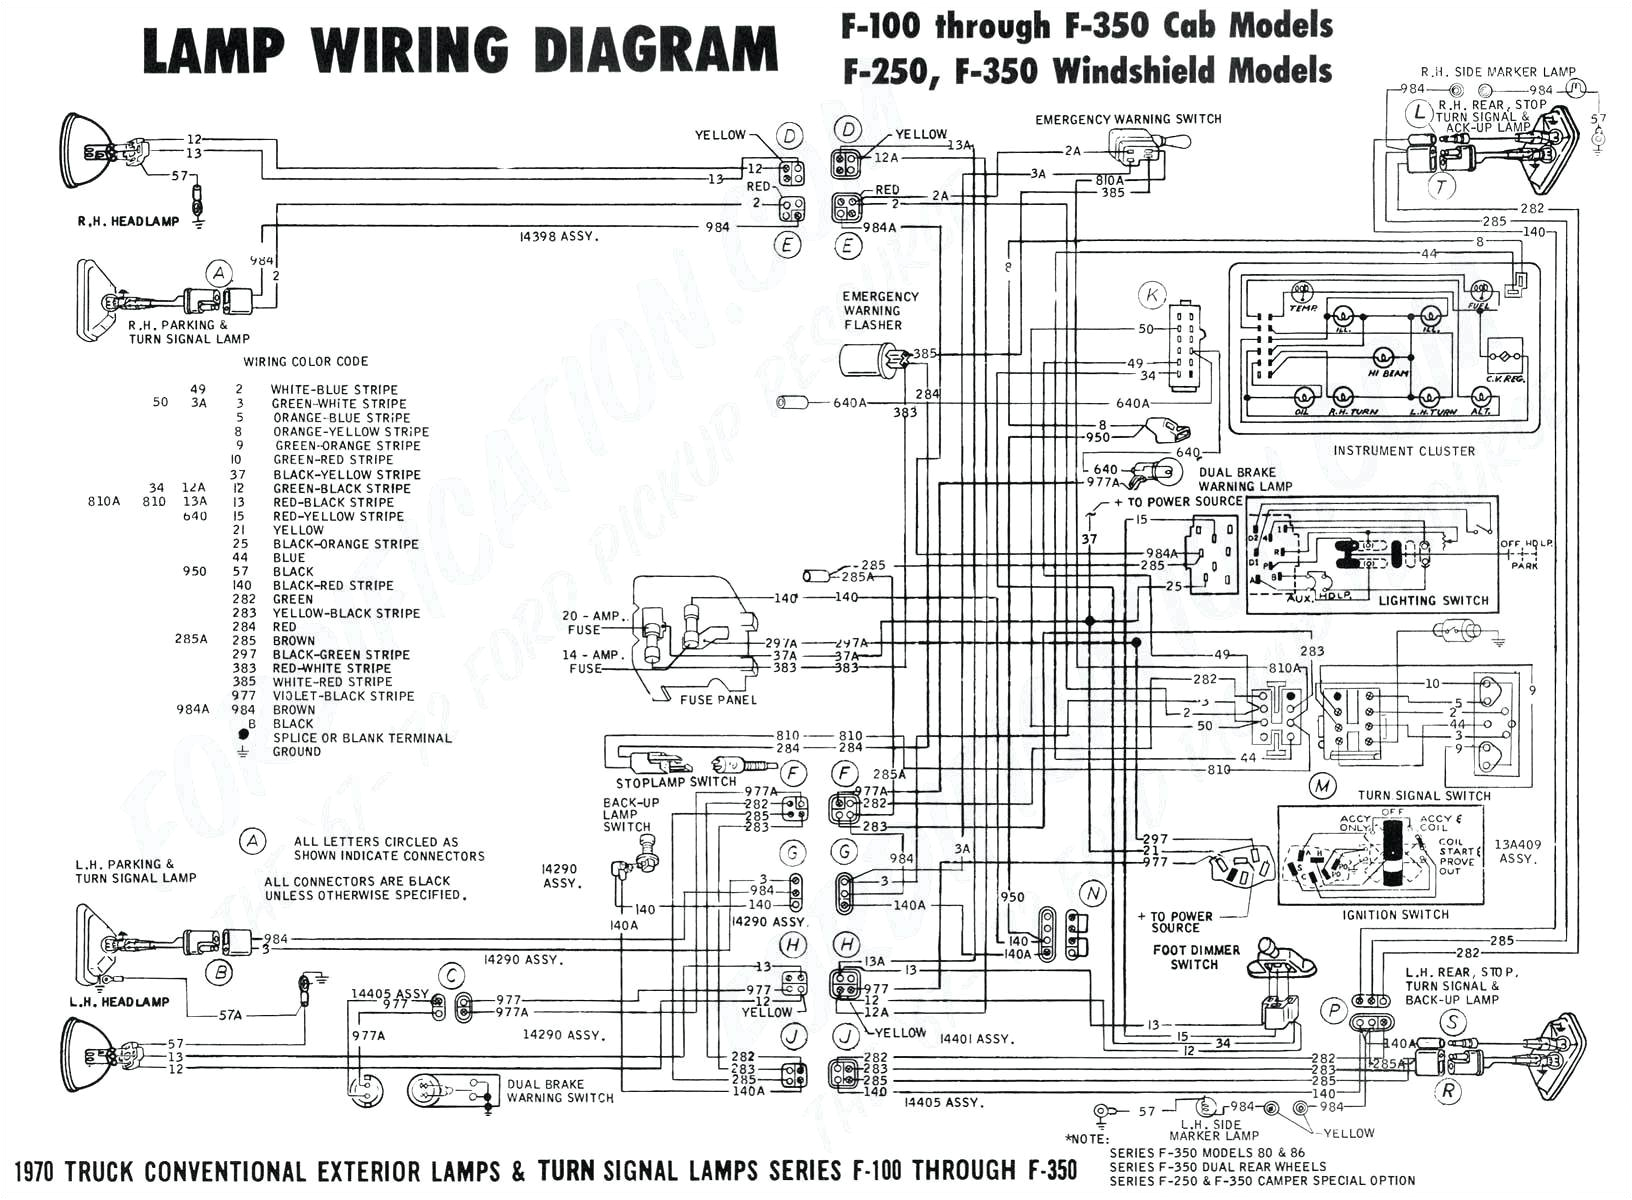 electric space heater wiring diagram awesome 3 phase heater wiring schematics wiring diagrams e280a2 jpg